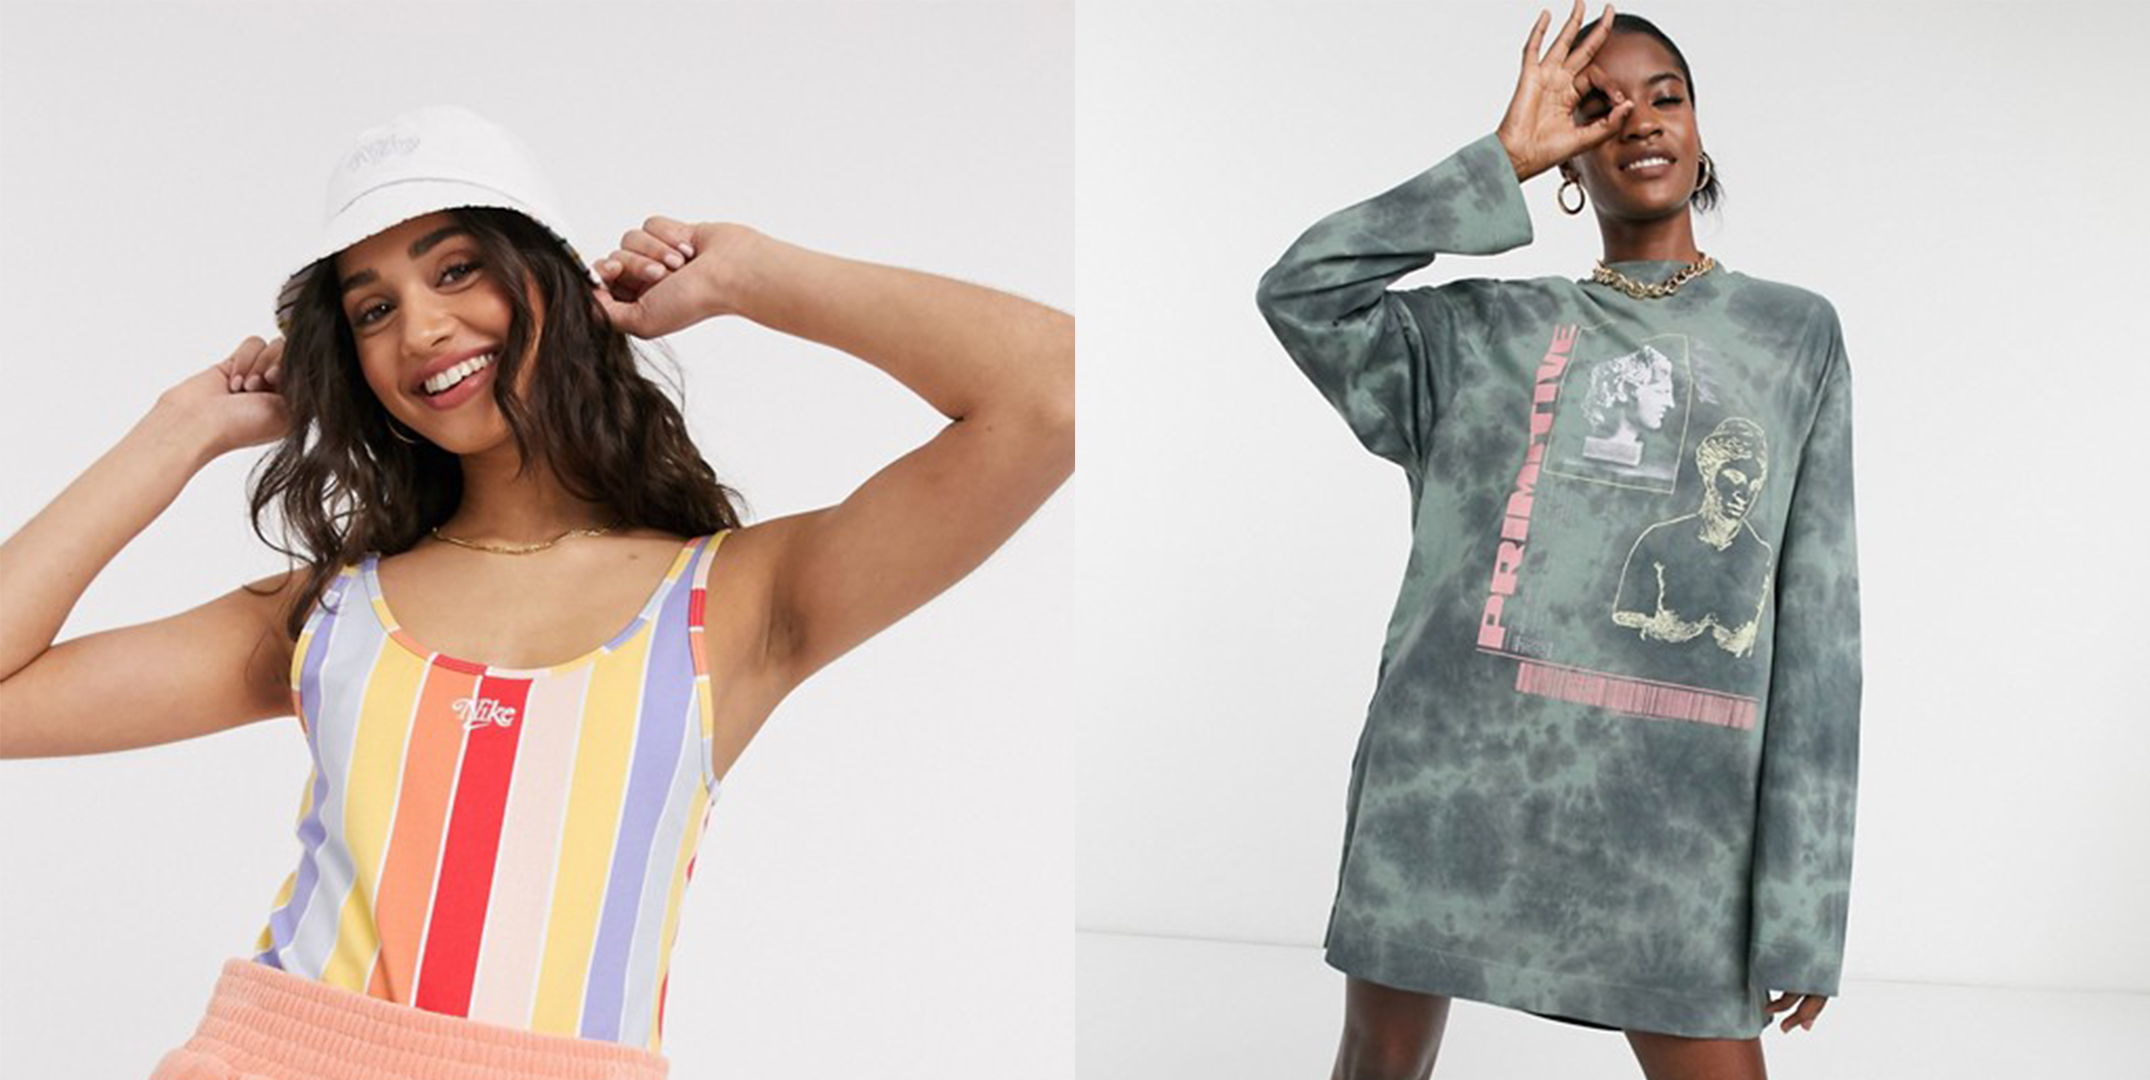 The ASOS Hauliday Sale Has Some Really, No, Like ~REALLY~ Good Deals